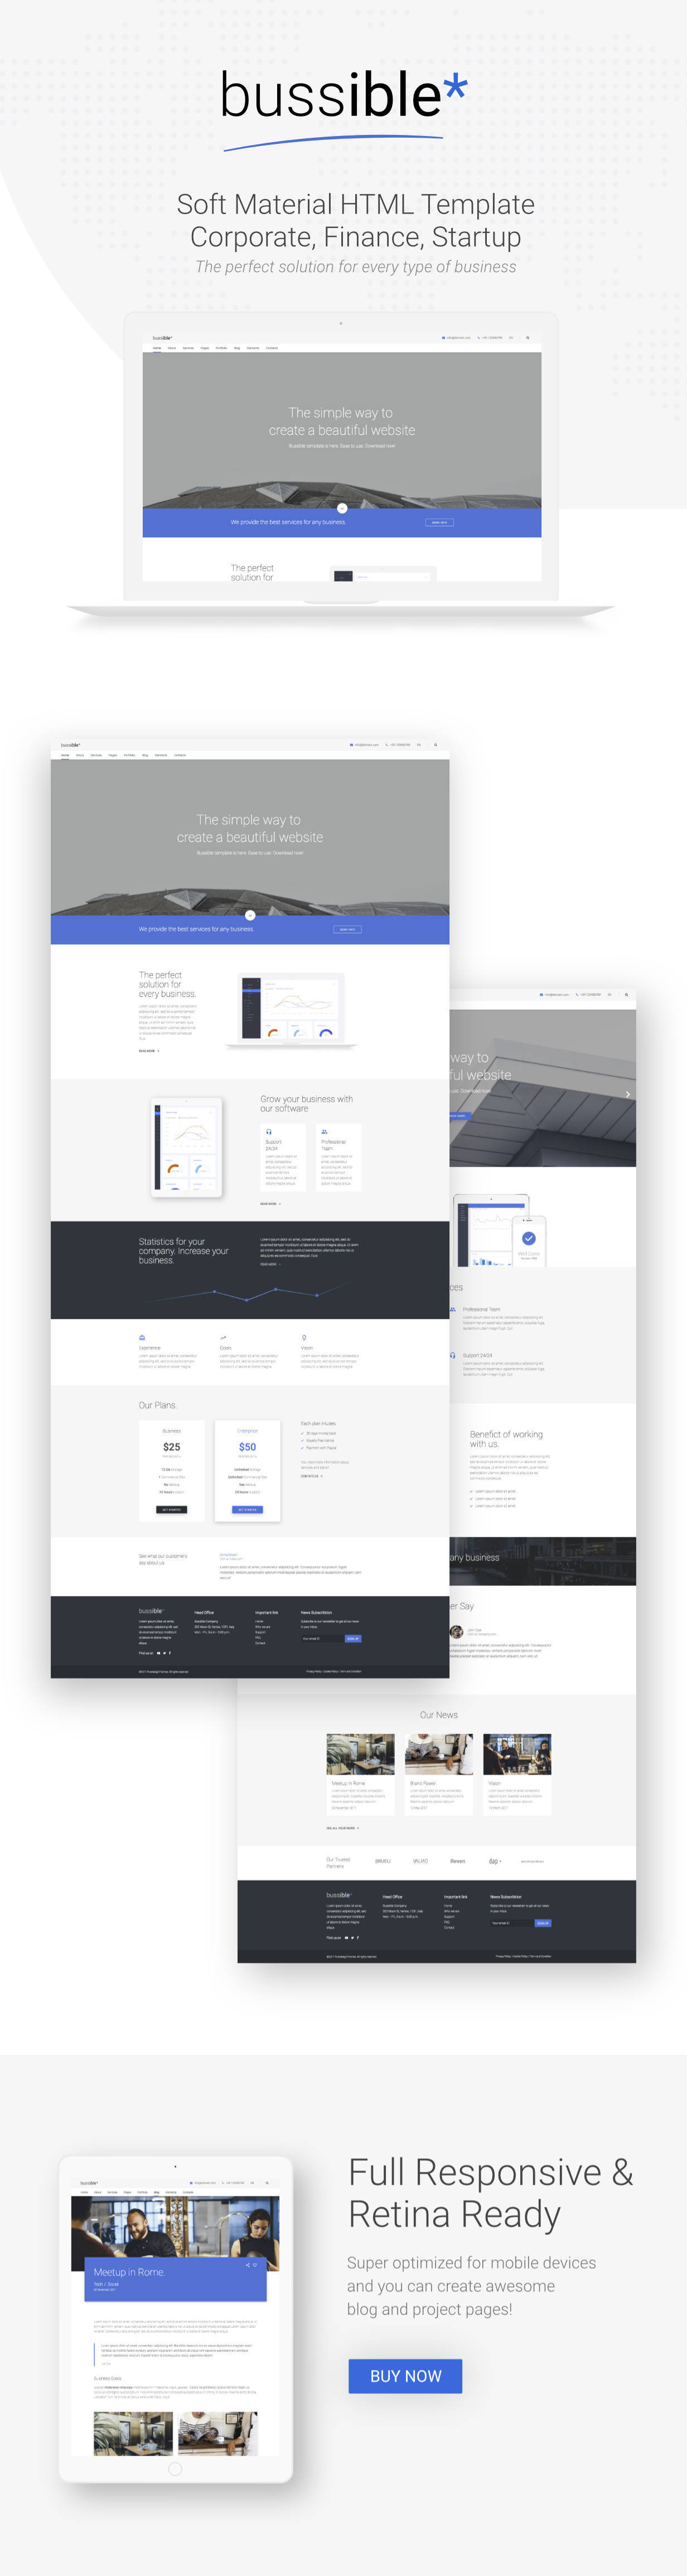 Bussible - Soft Material Corporate, Finance, Startup HTML Template - 1